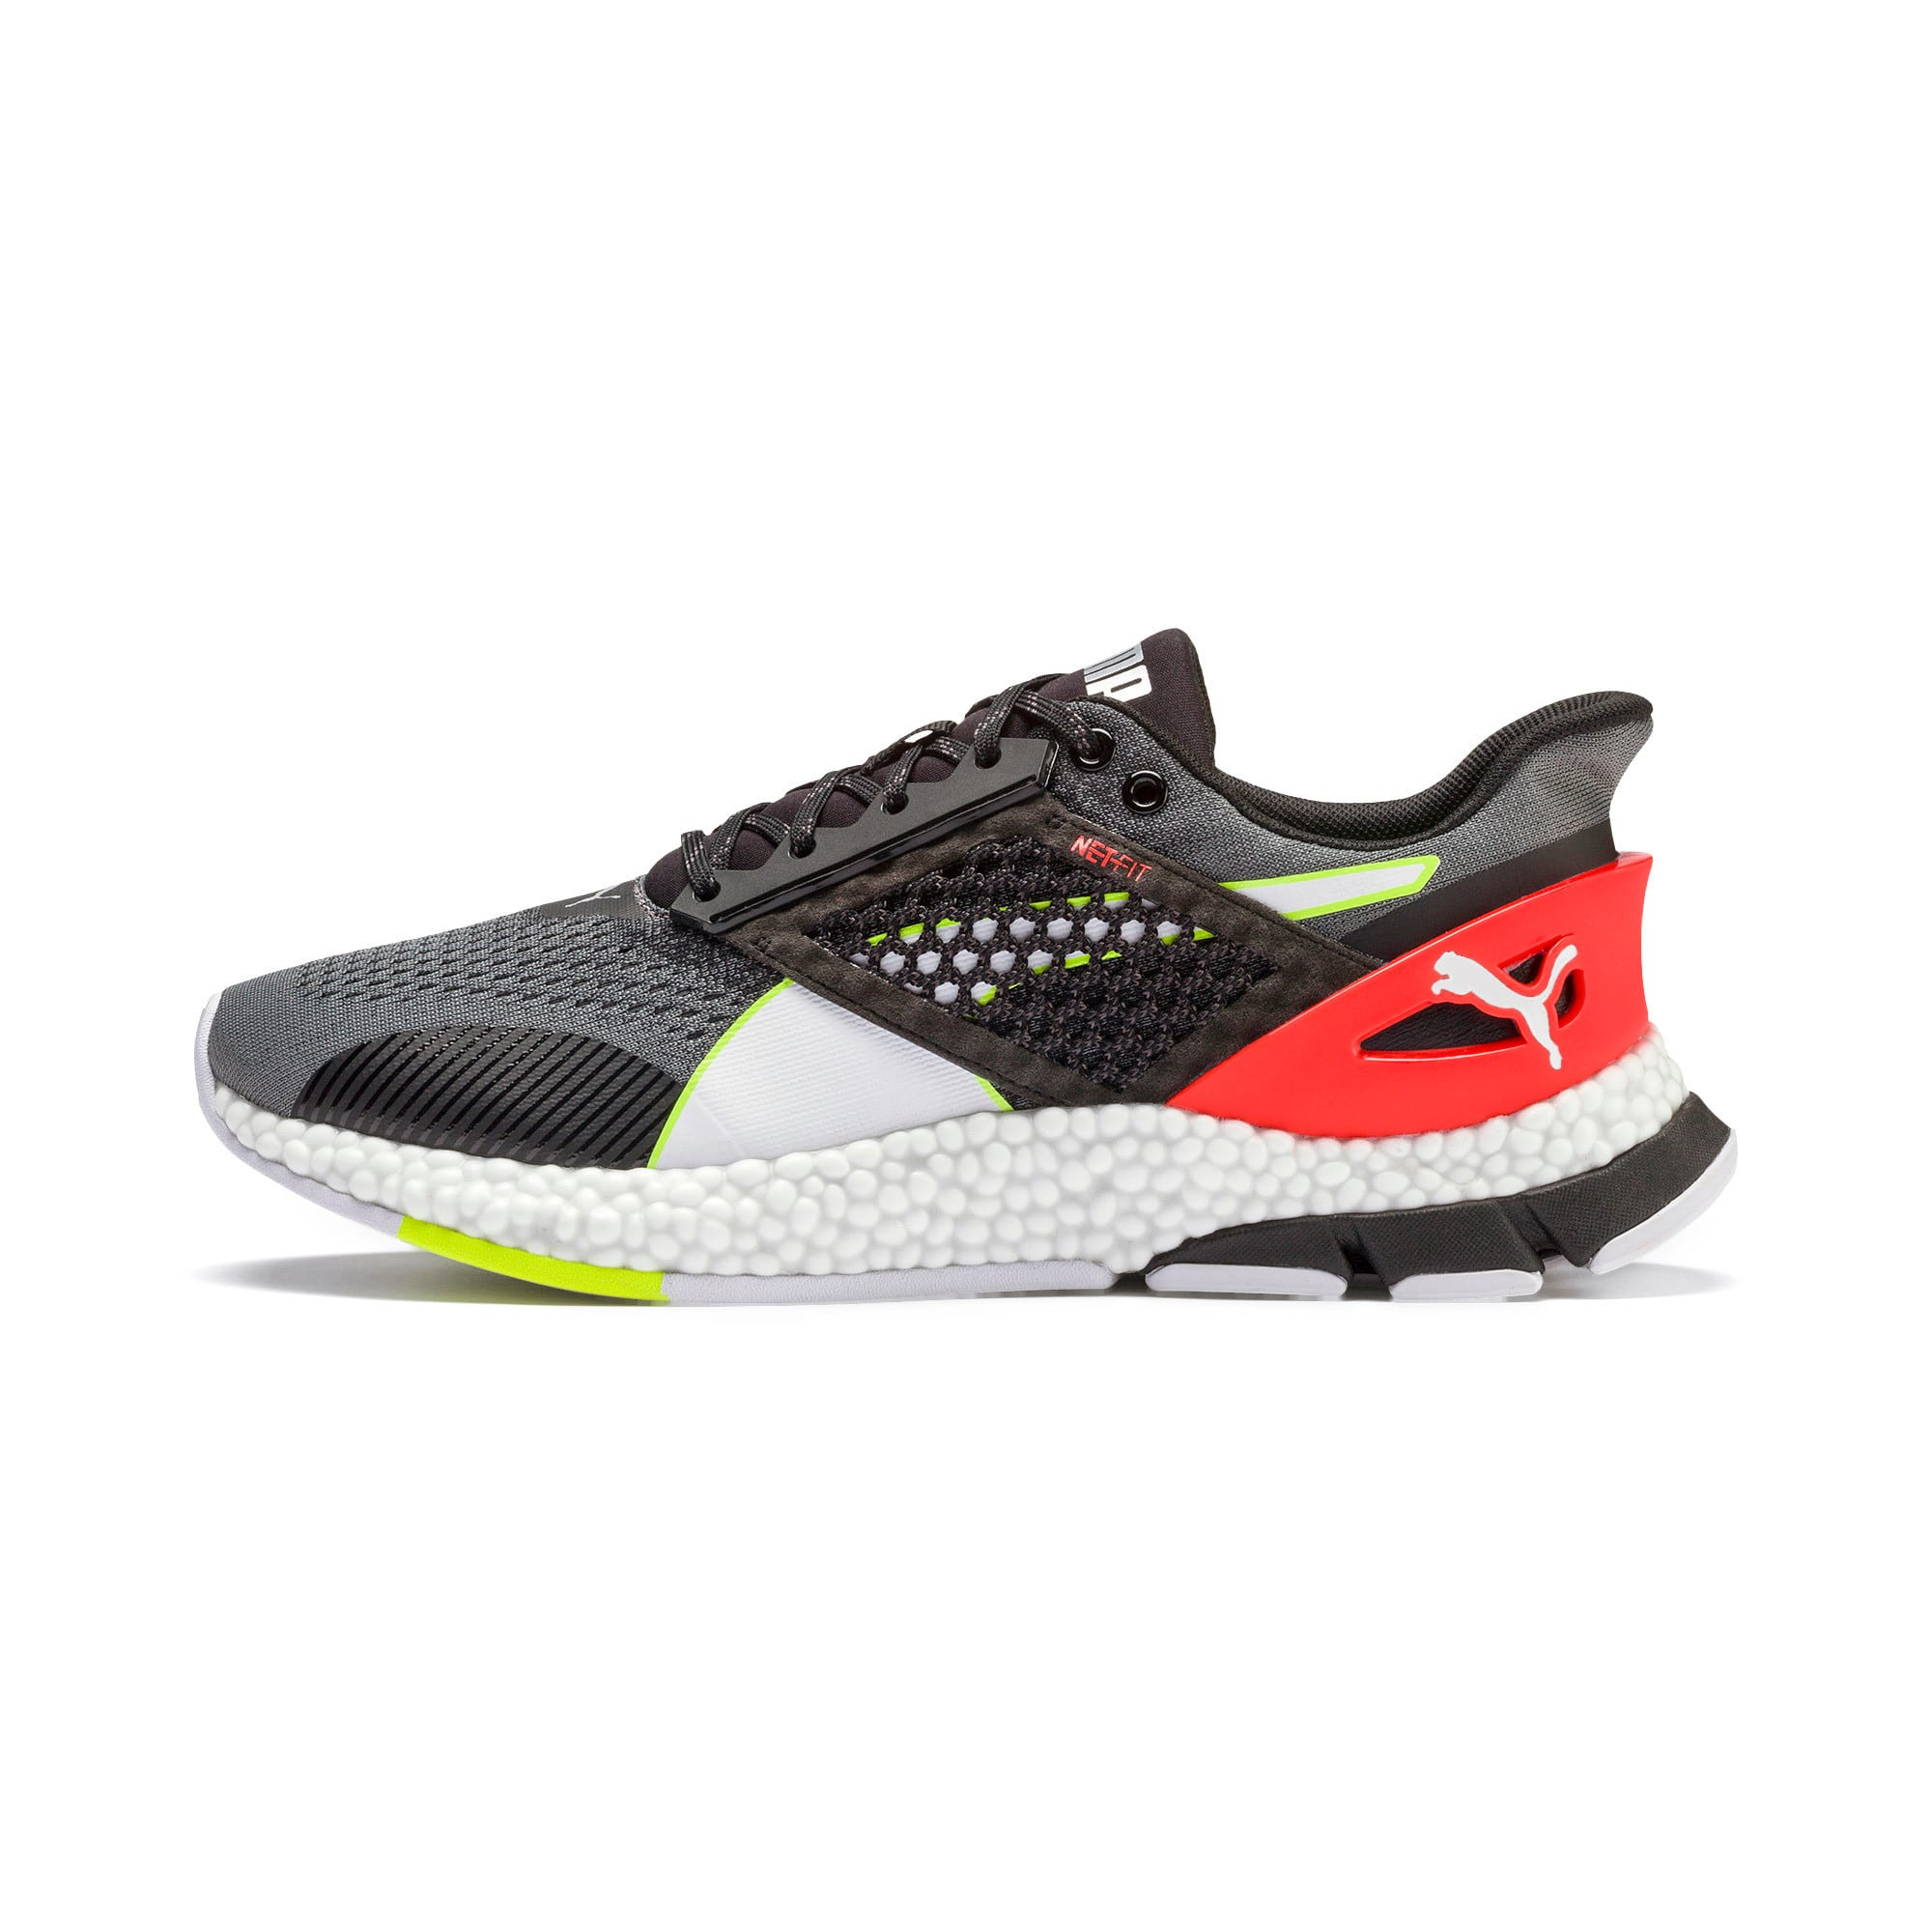 Thumbnail 1 of HYBRID NETFIT Astro Men's Running Shoes, CASTLEROCK-Puma Blck-Ngy Red, medium